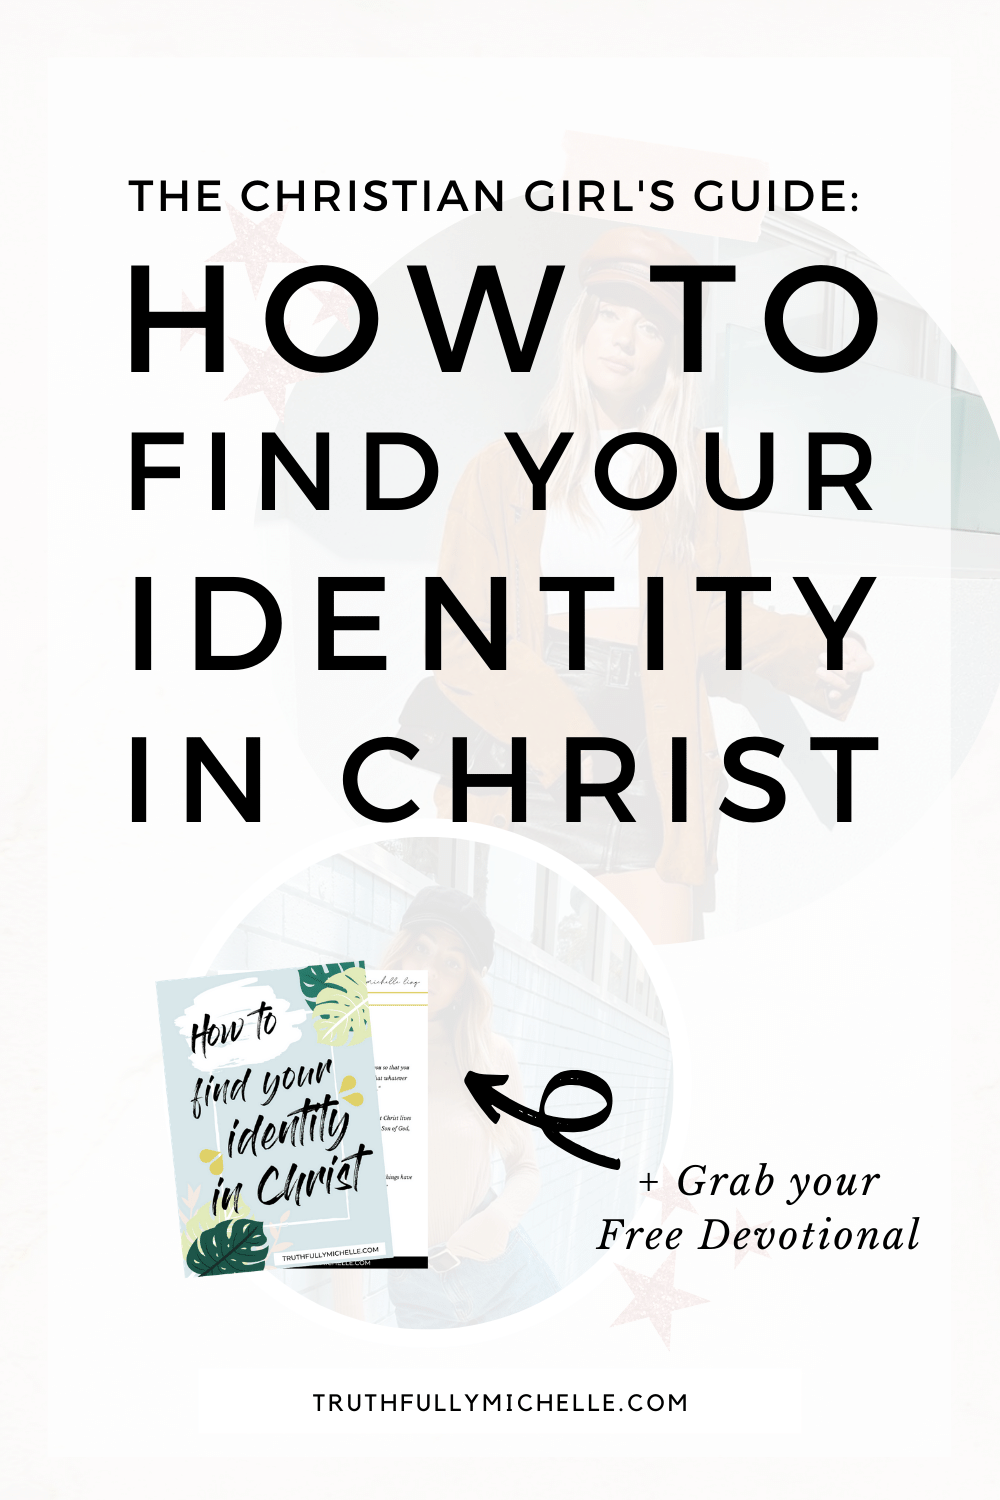 finding your identity in Christ, identity in Christ for girls, our identity in Christ, my identity in Christ, how to find your identity in Christ